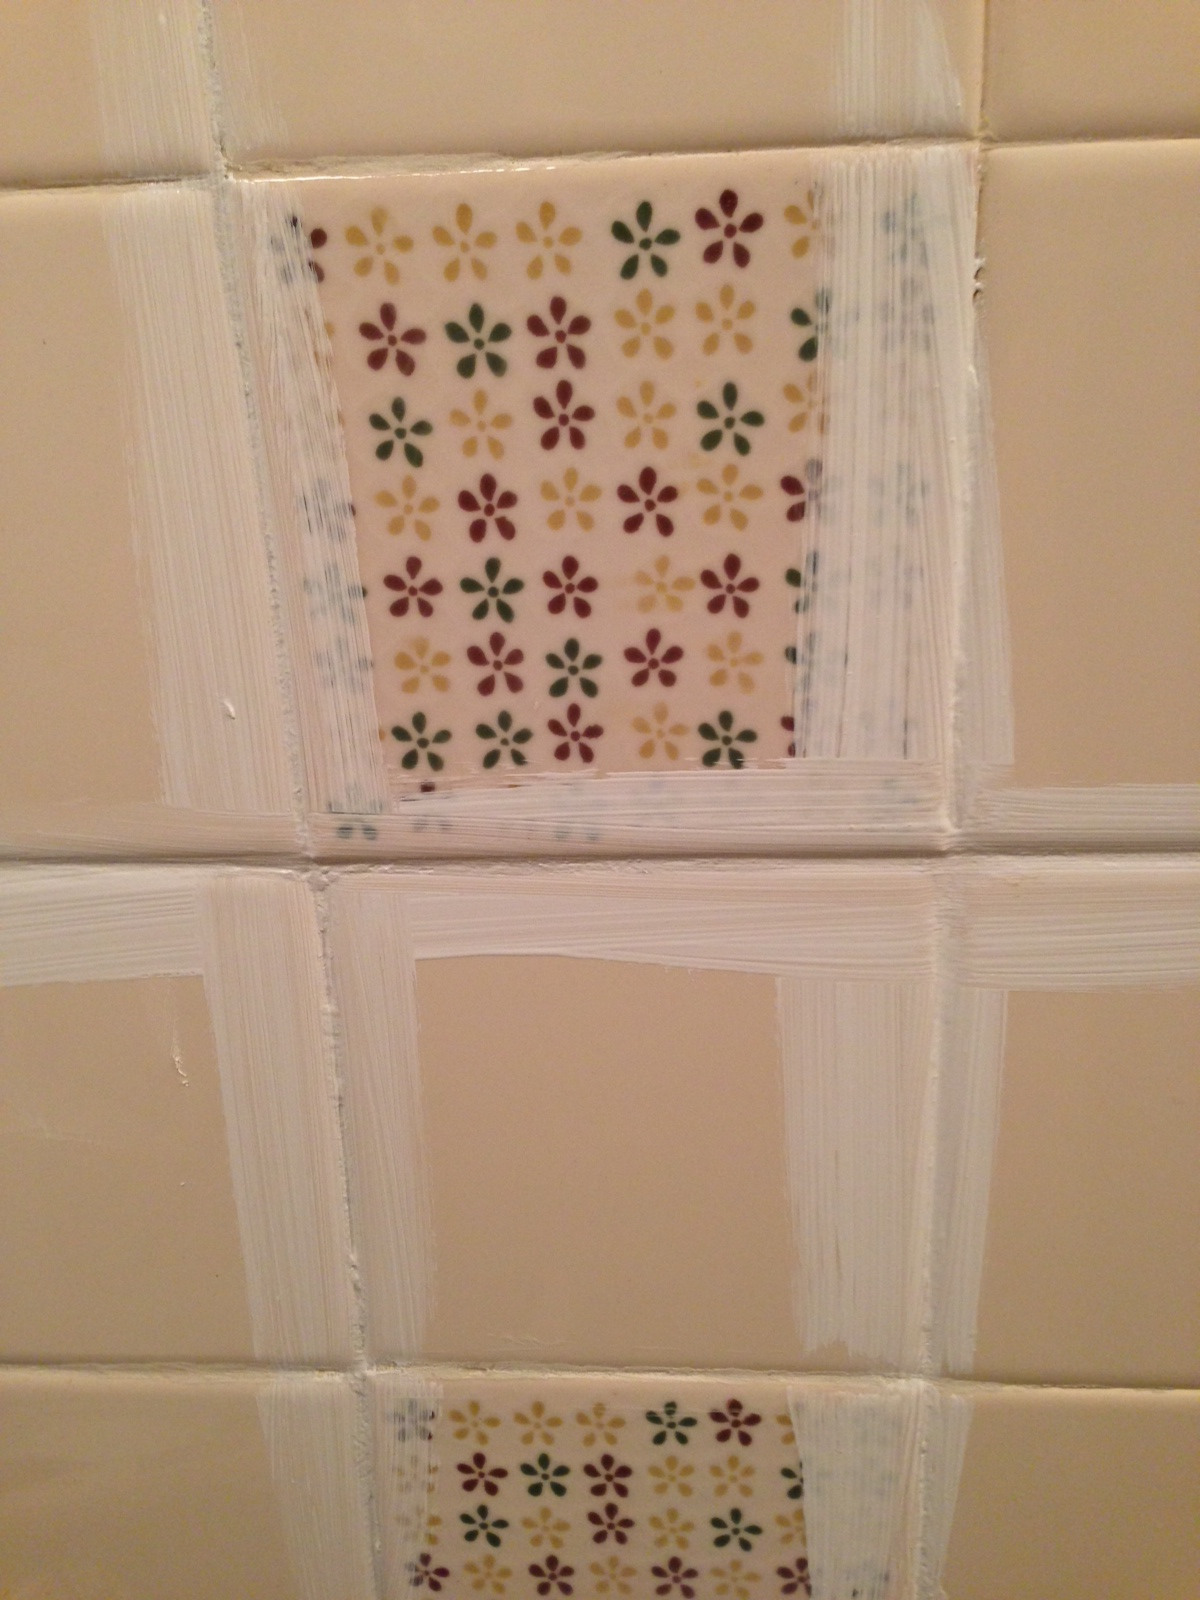 Remodelaholic a 170 bathroom makeover with painted tile how to paint tile by the learner observer on remodelaholic doublecrazyfo Images